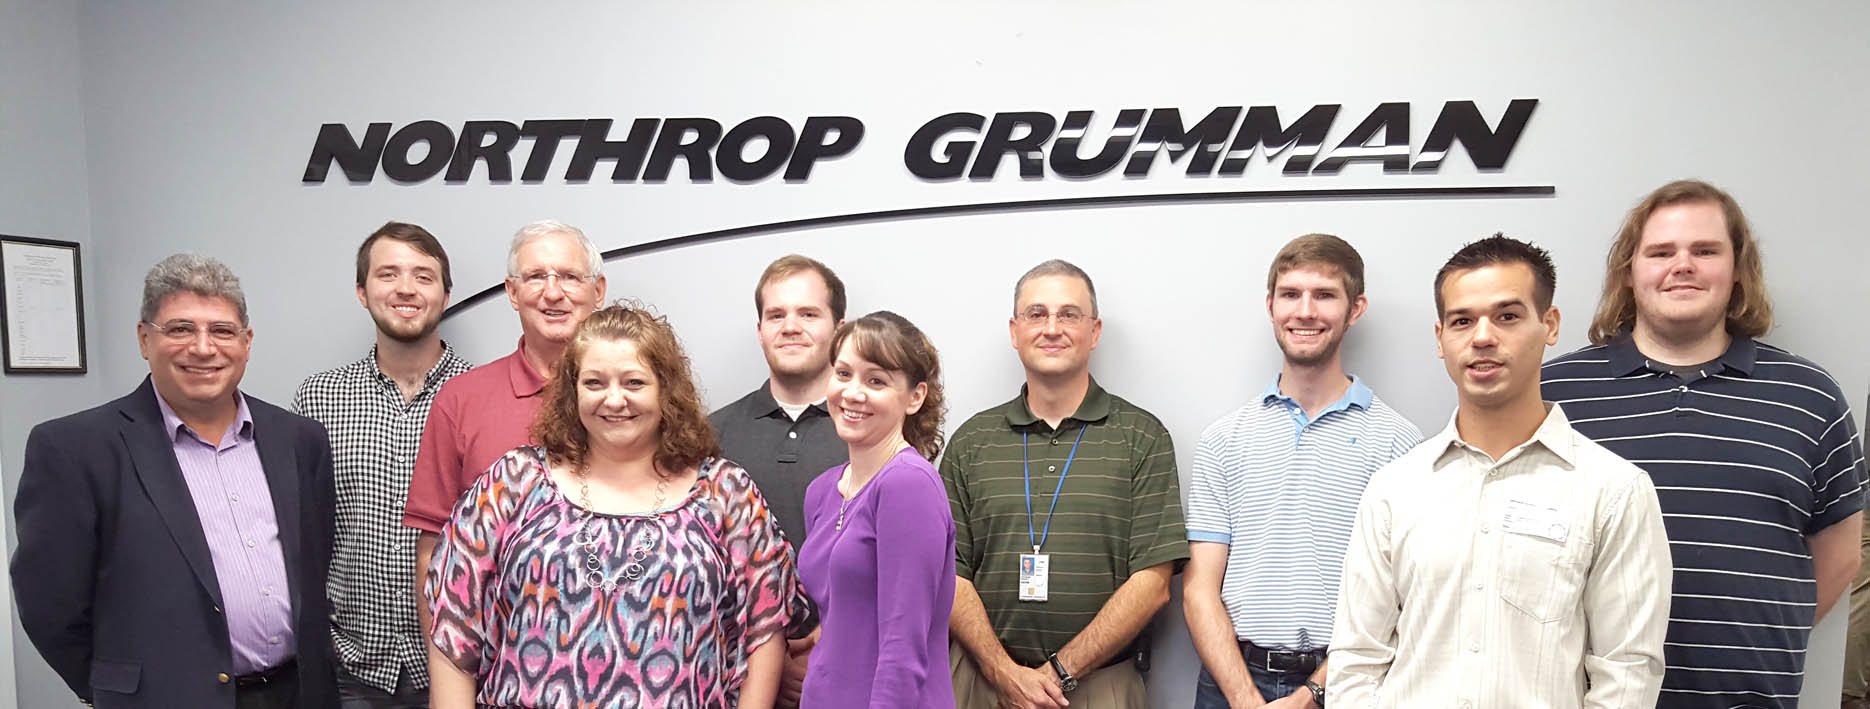 Click to enlarge,  Touring Synoptics, a division of Northrop Grumman, were, left to right: Dr. Chrys Panayiotou, David Pope, Gary Beasley, Katie Hall, Jeremiah Roberts, Angela Humphries, Dr. Kevin Stevens, Nathanael Turley, Thomas Martin, and Joshua Roberts.